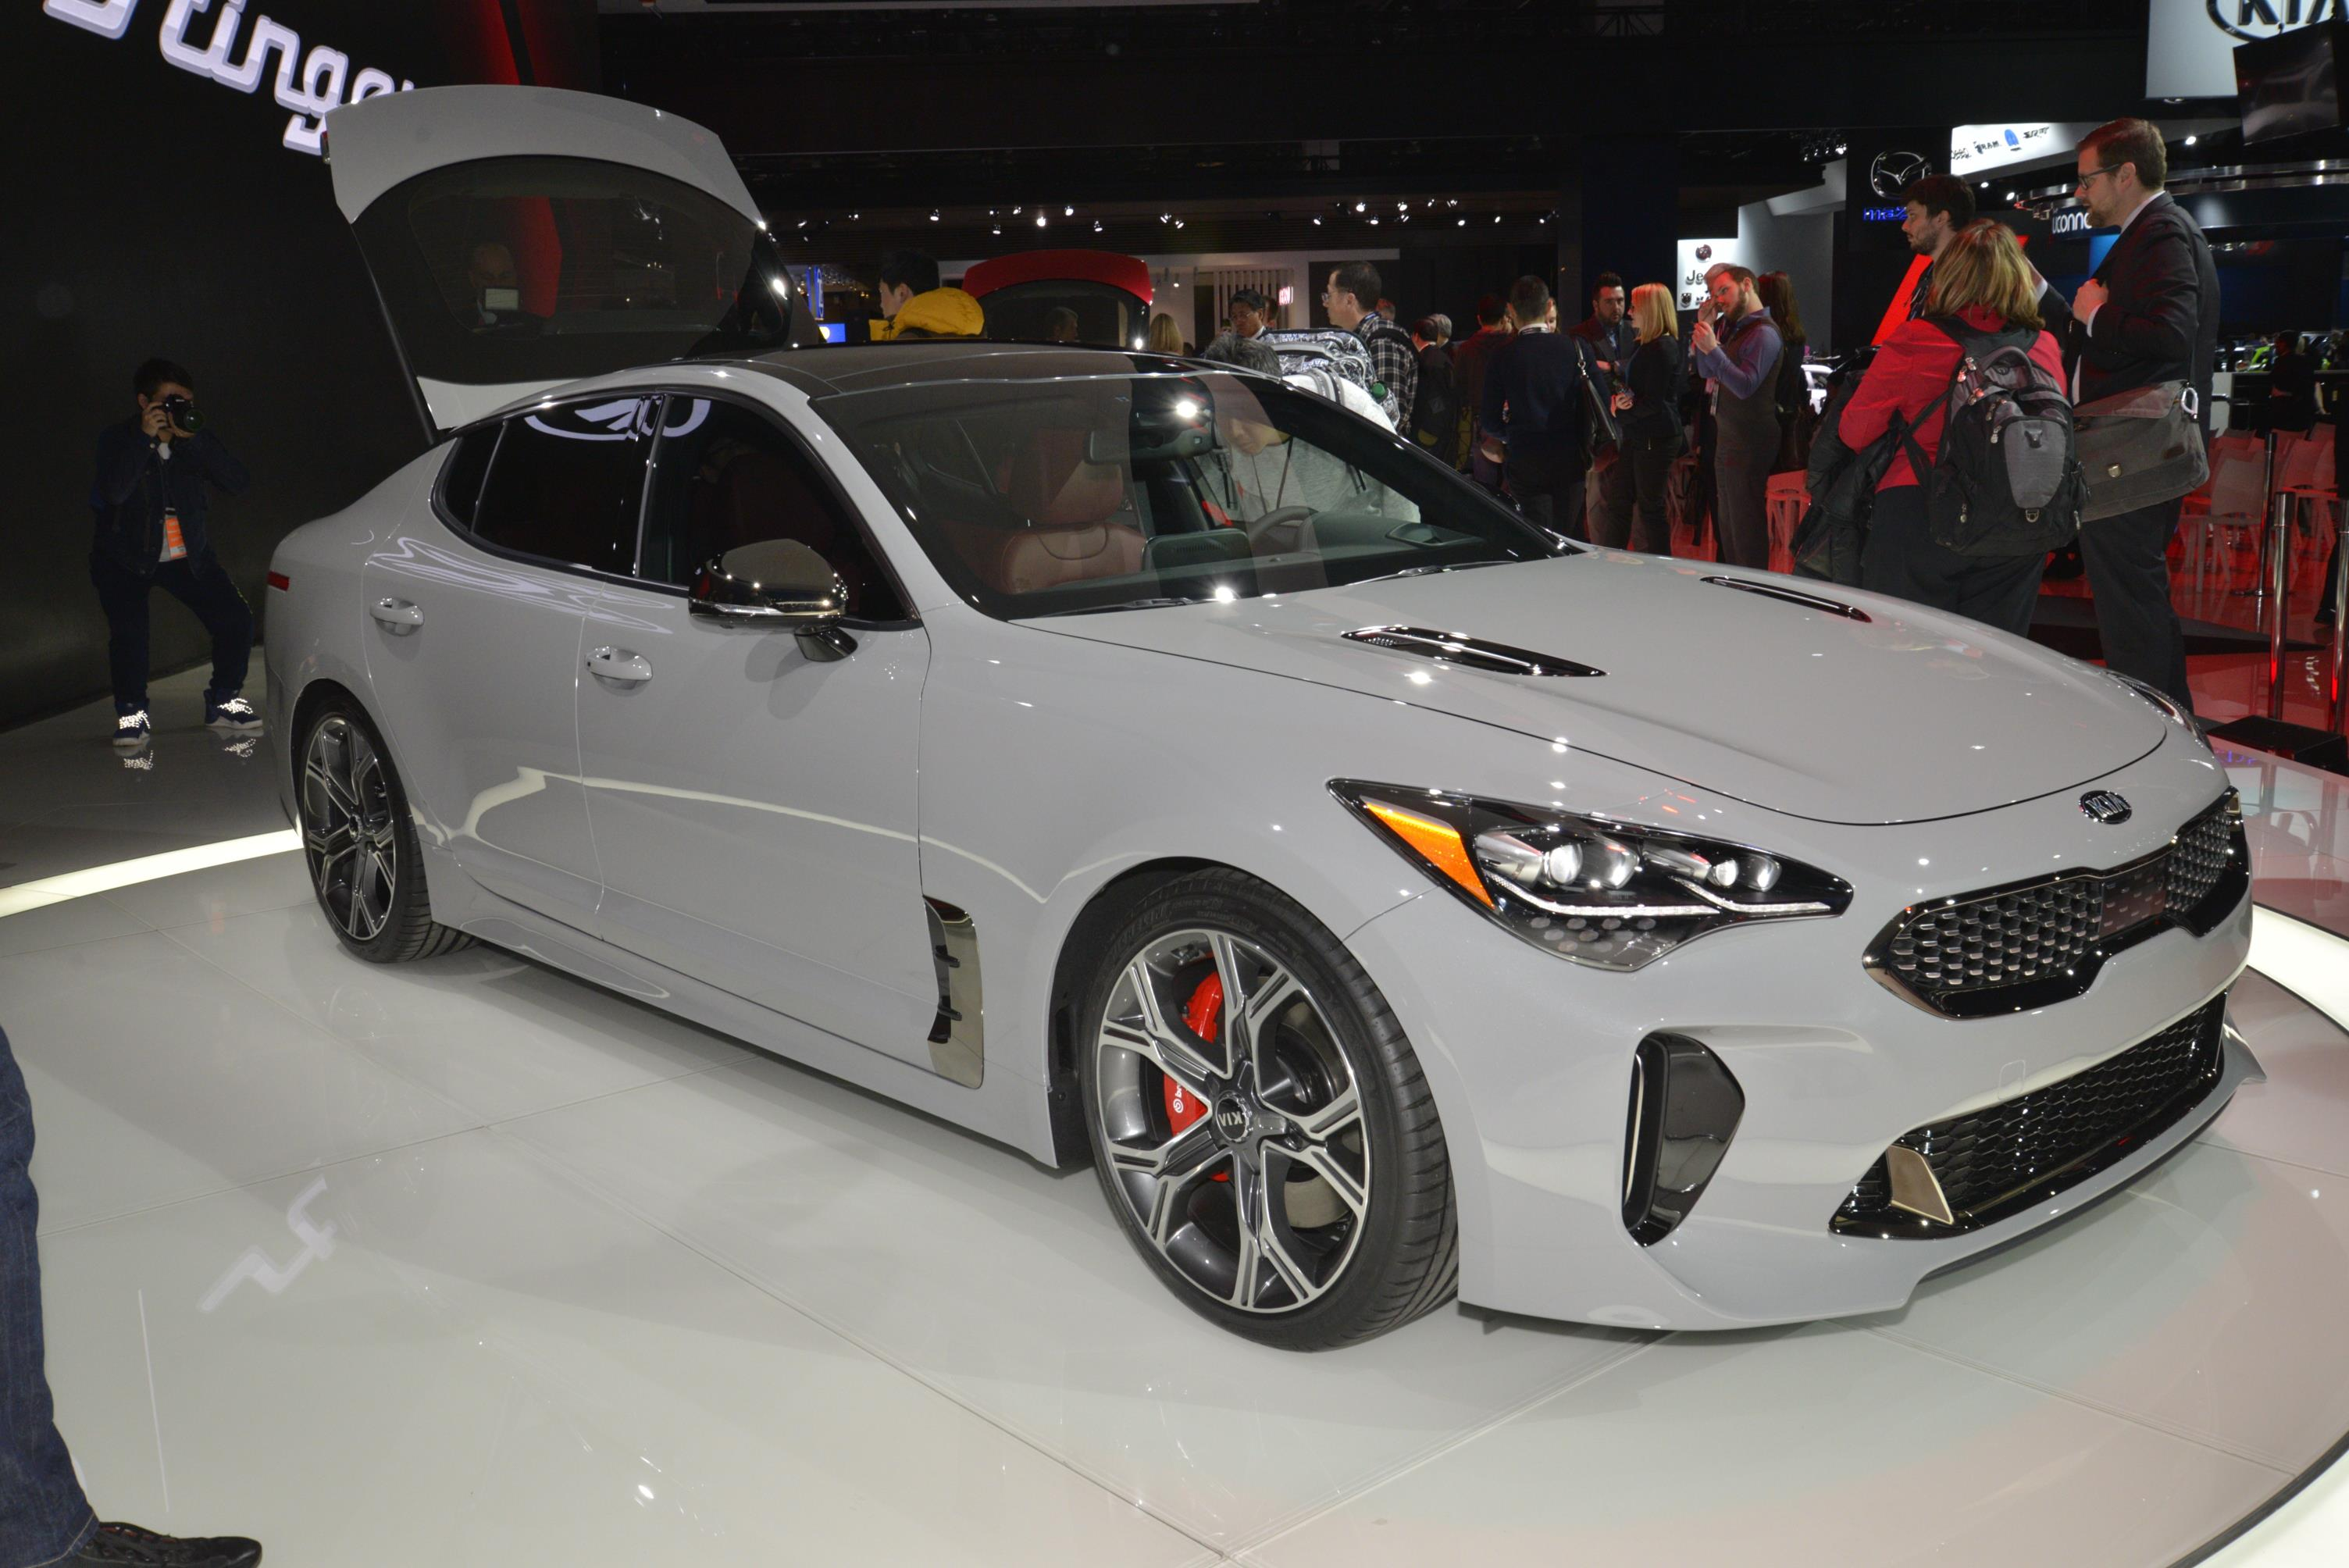 big us gm press of car tom honda is concept kearns designer the autos july toyota numbers day chief as displayed north preview speaks american kia during stinger here chrysler auto sales eight ford international are show